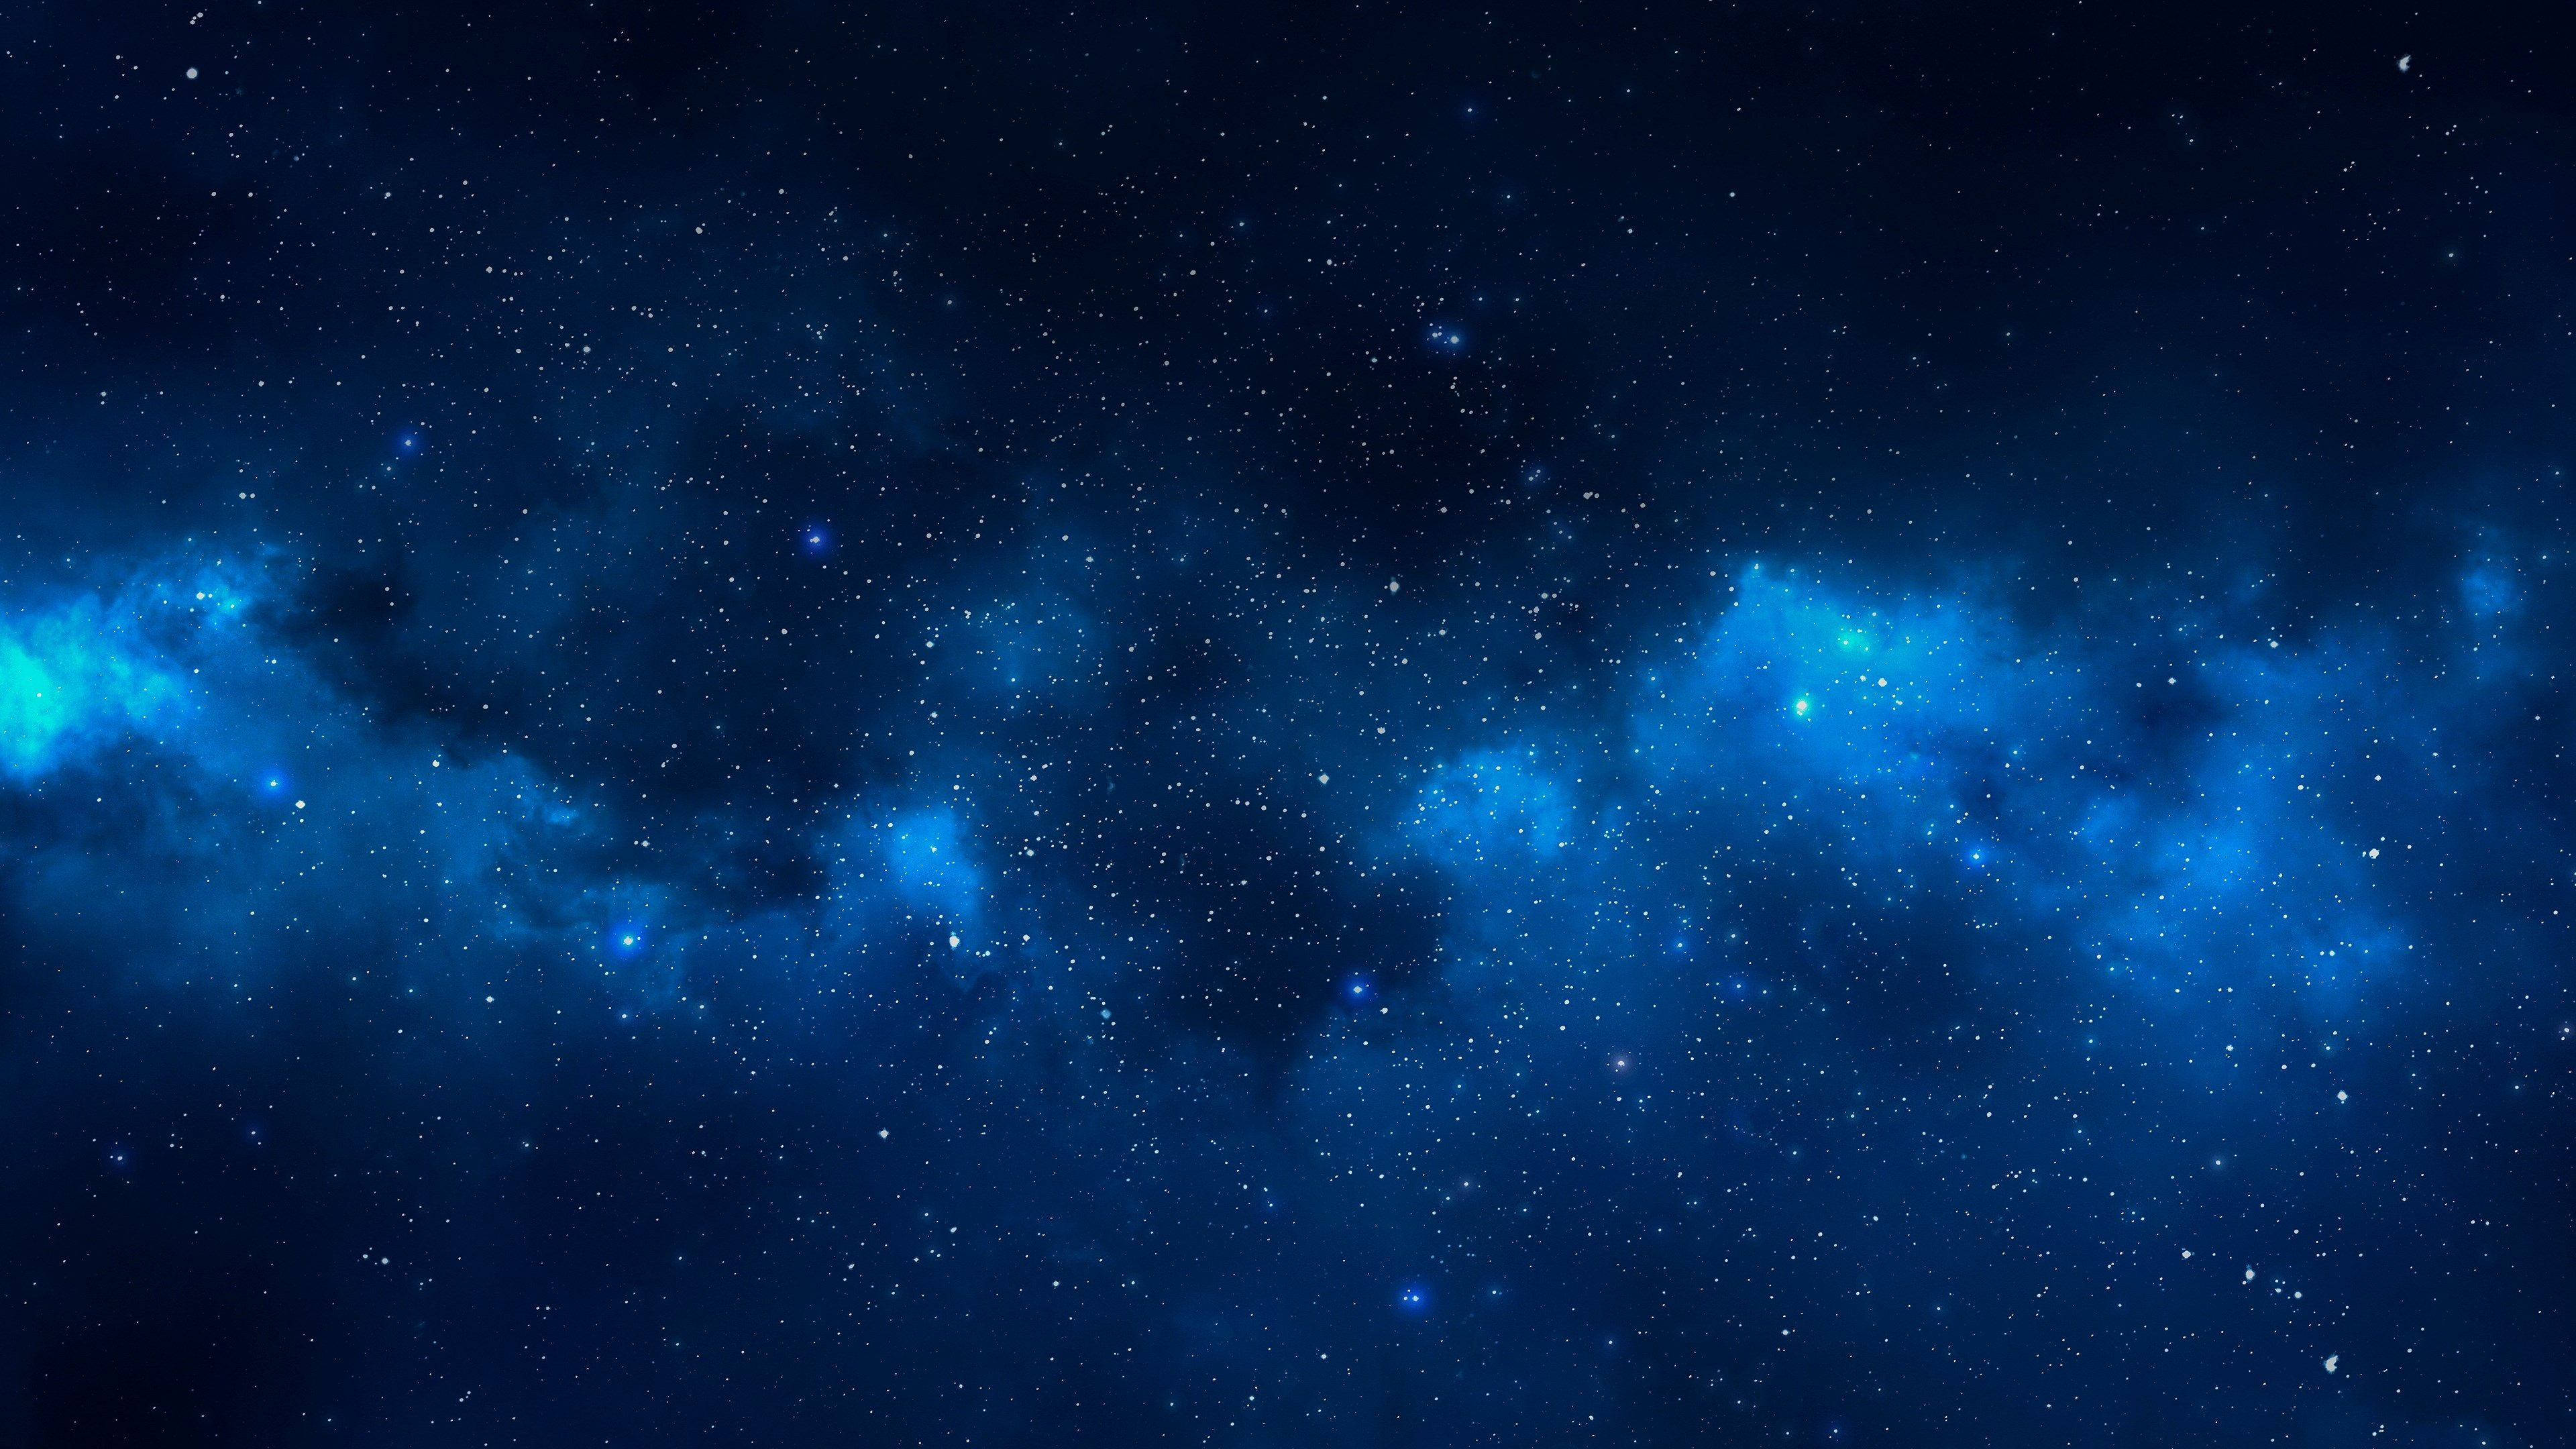 Filename 3840x2160 Stars 4k Computer Wallpaper Hd Free Download Resolution 3840x2160 File Size In 2020 Computer Wallpaper Hd Blue Galaxy Wallpaper Galaxy Wallpaper